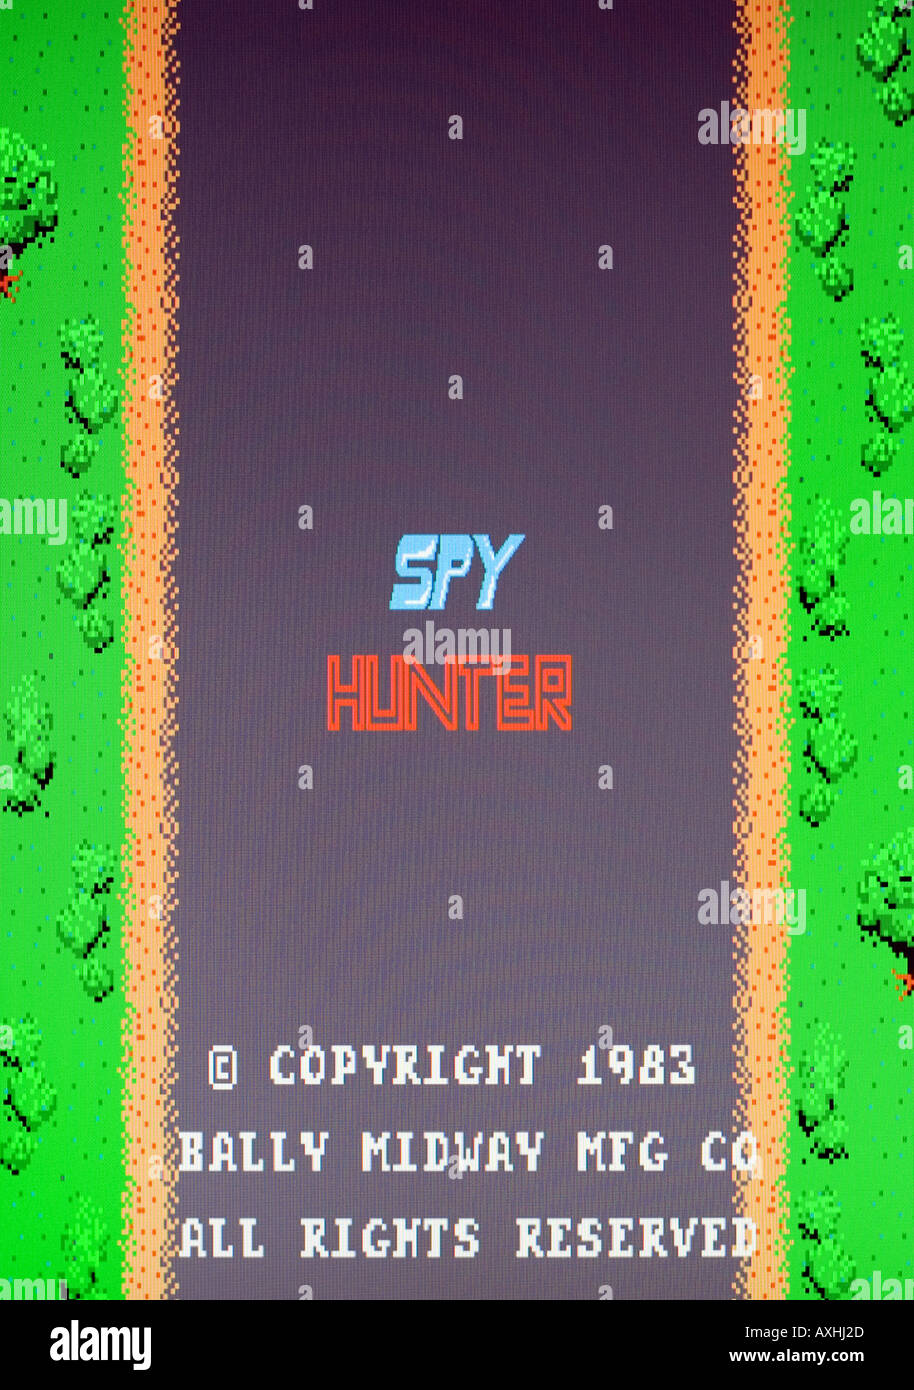 Spy Hunter Bally Midway Mfg Inc 1983 Vintage arcade videogame screen shot - EDITORIAL USE ONLY - Stock Image